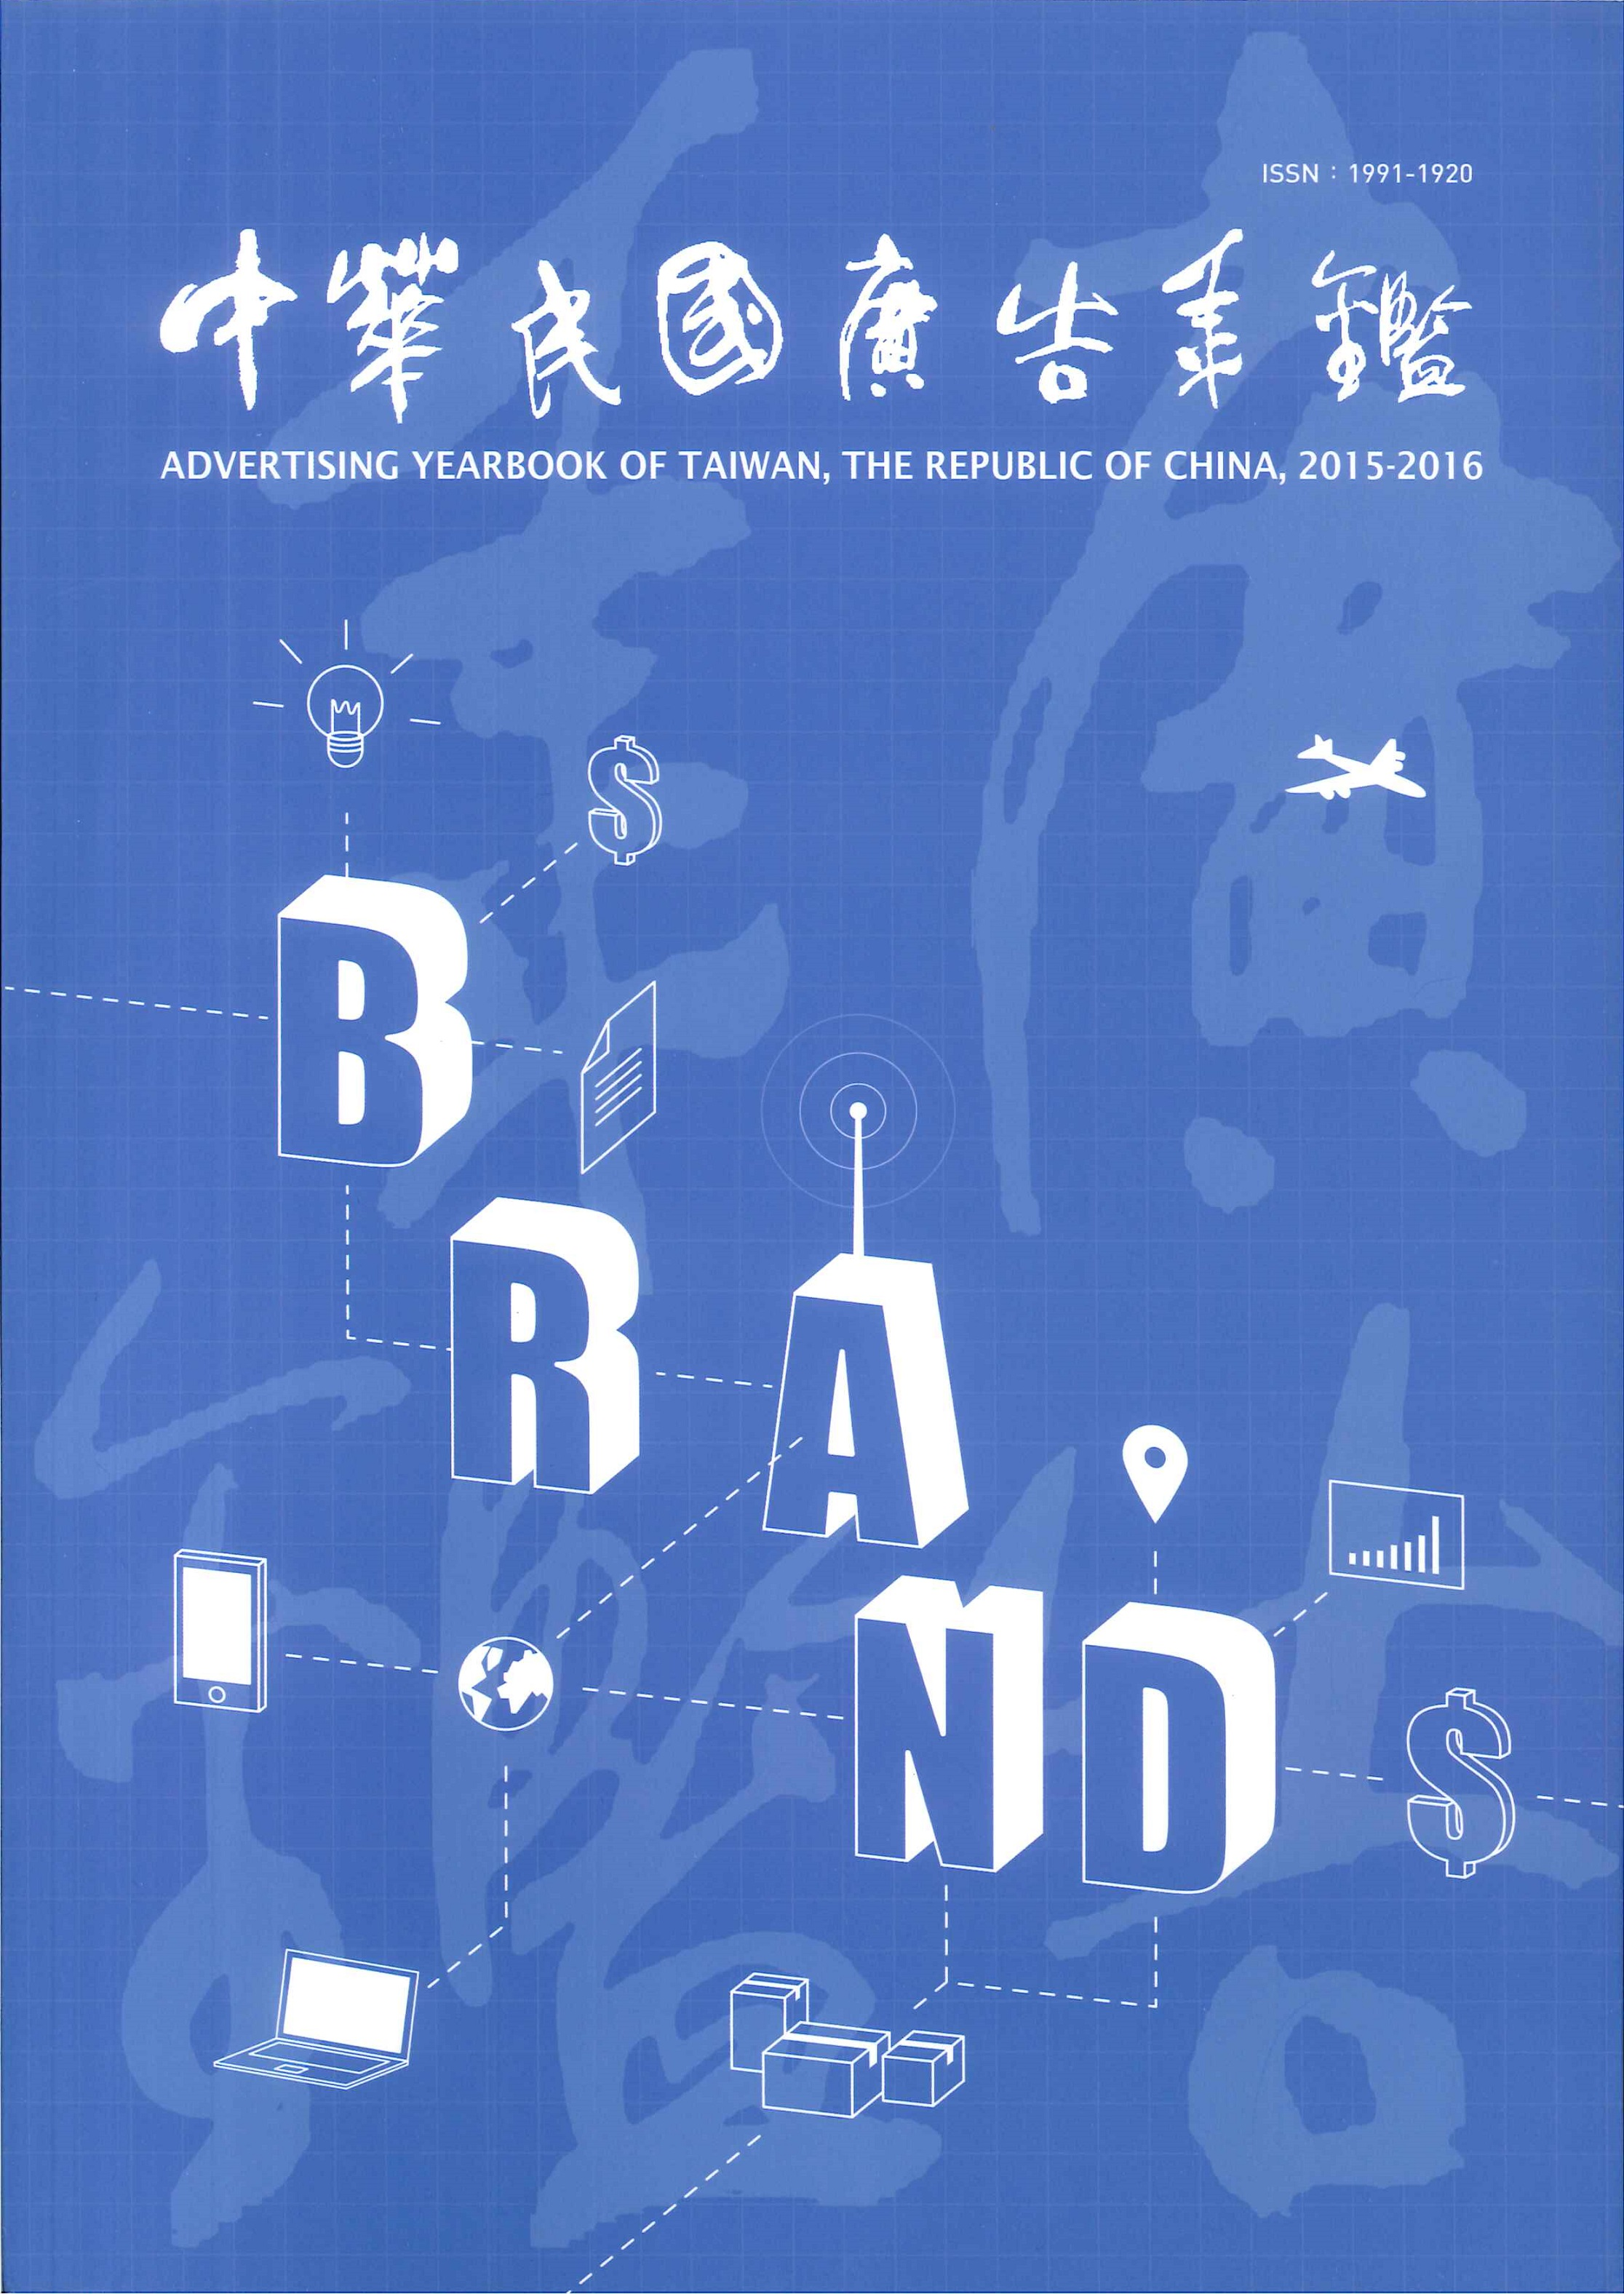 中華民國廣告年鑑=Advertising yearbook of Taiwan, the Republic of China